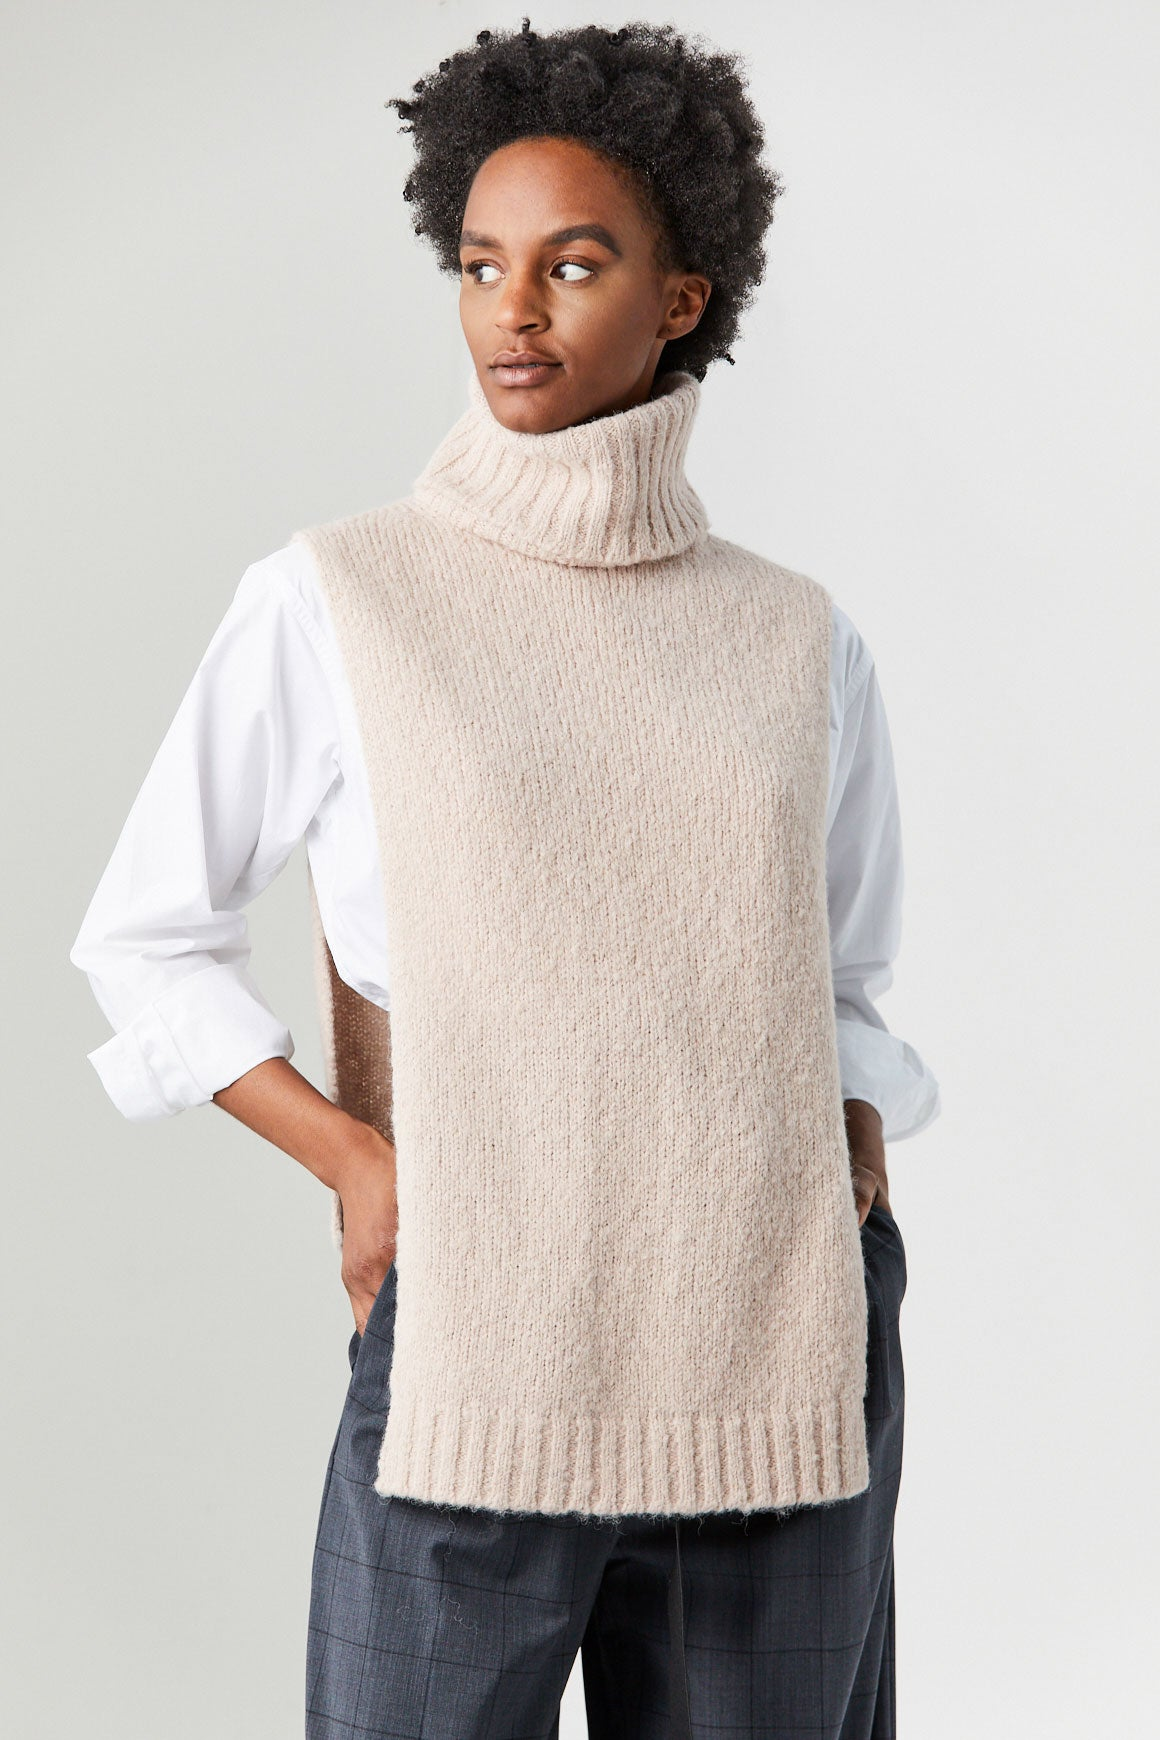 TIBI - Cozette Alpaca Turtleneck, Light Burley